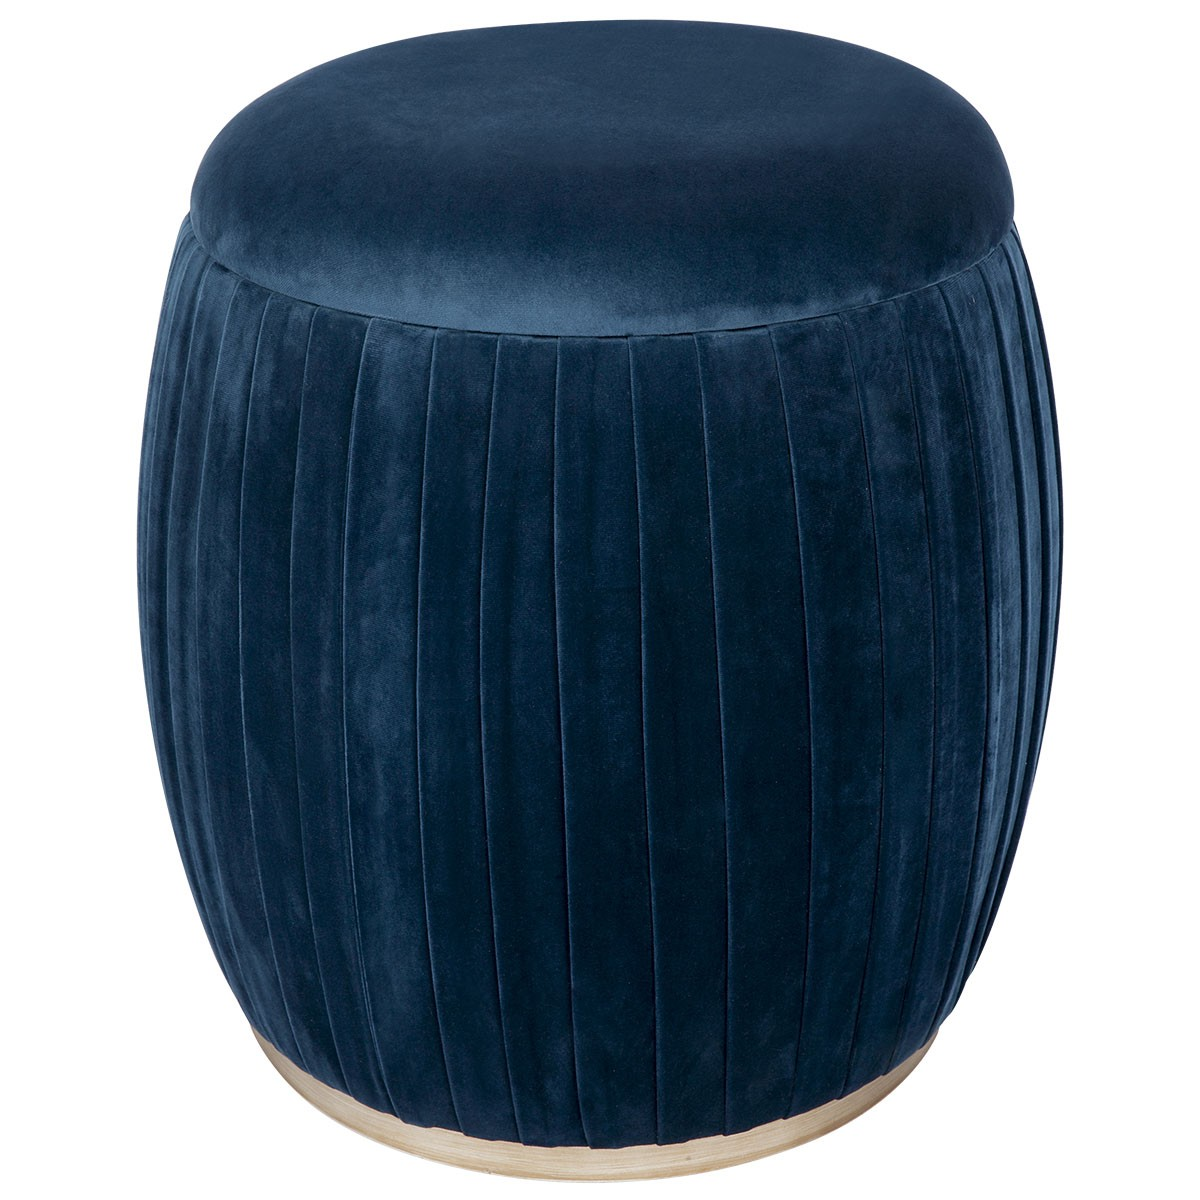 Capsule Velvet Fabric Storage Stool, Navy